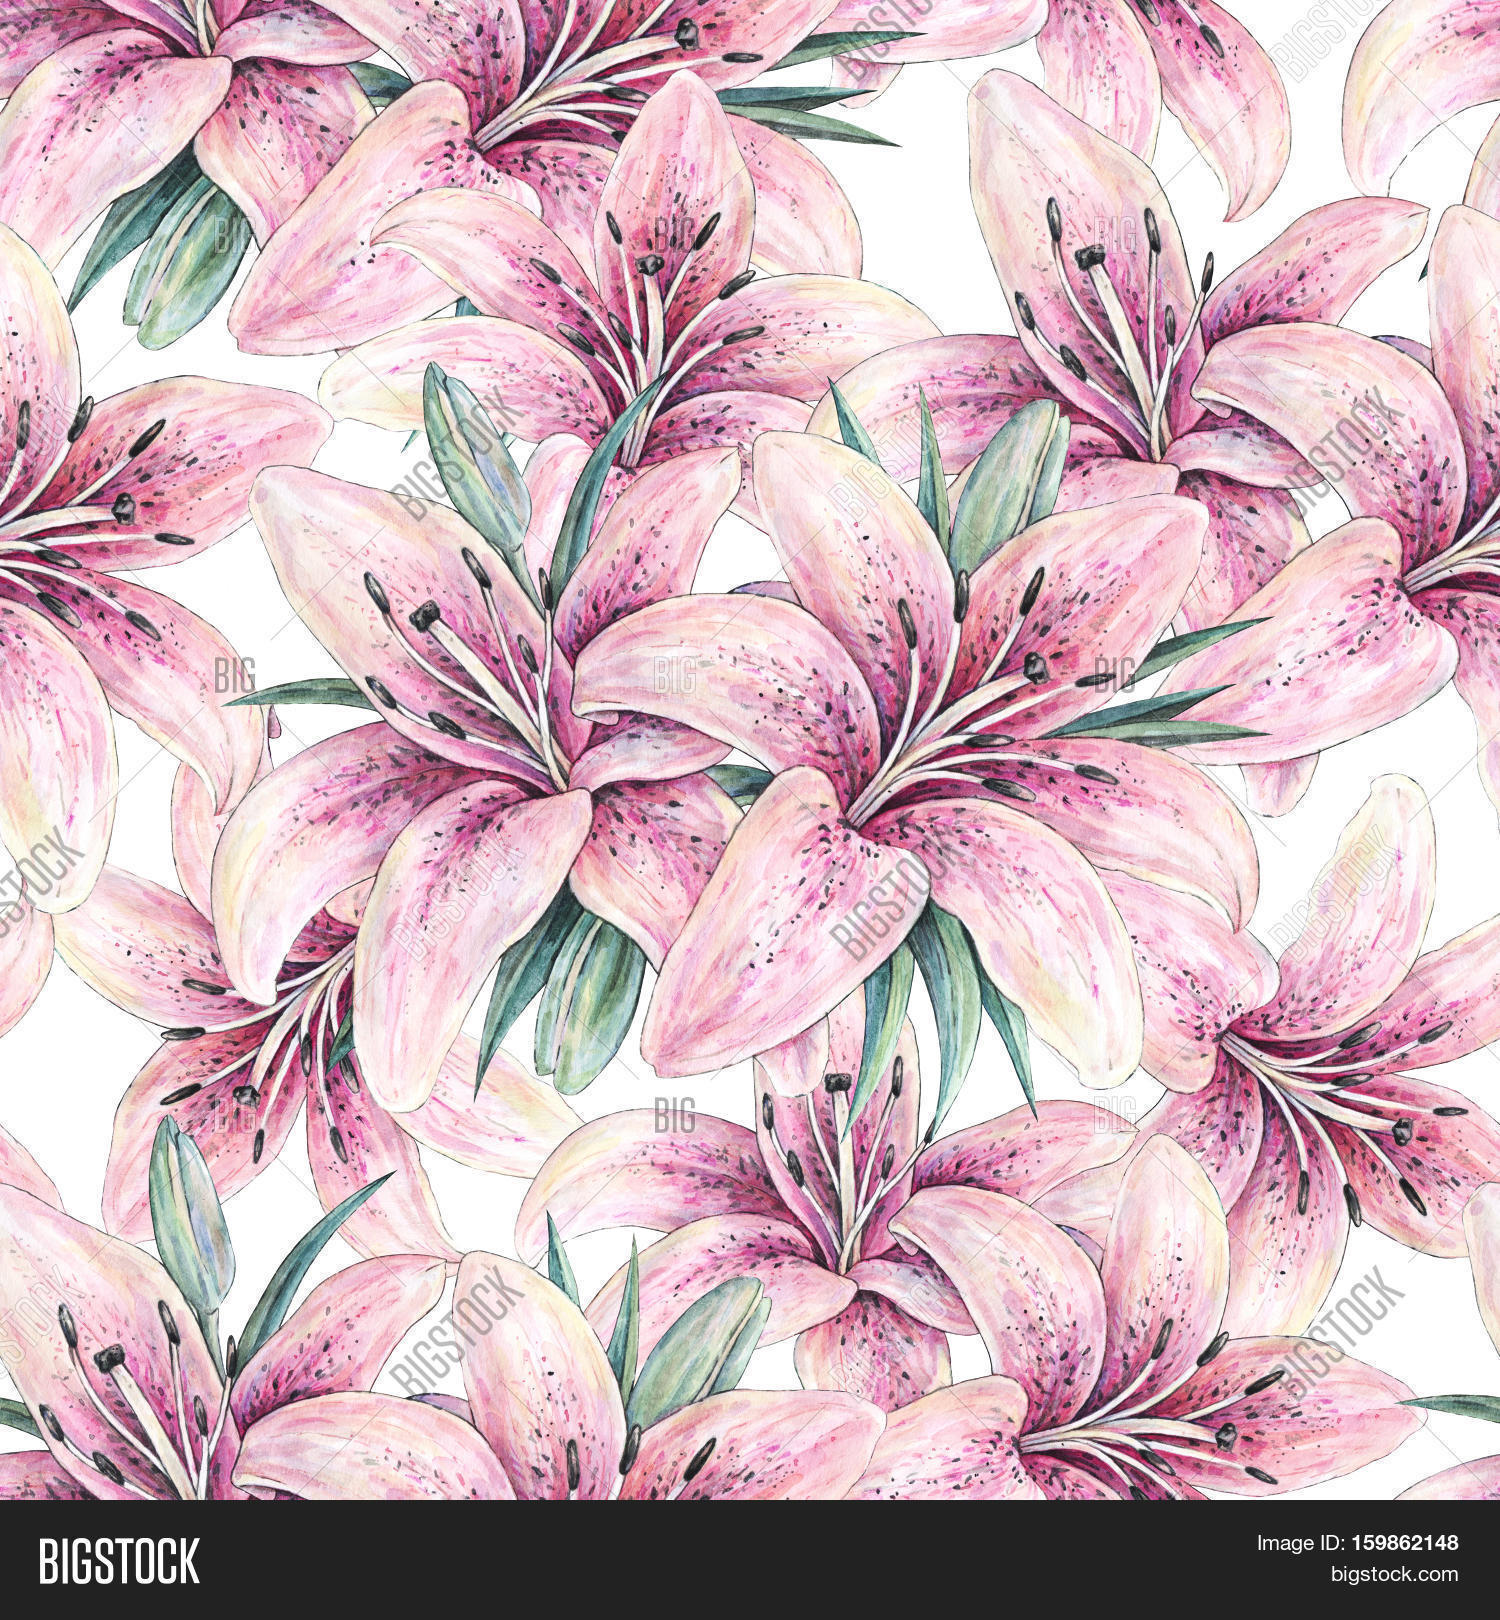 Pink lily flowers isolated on white image photo bigstock pink lily flowers isolated on white background watercolor handwork illustration drawing of blooming lily izmirmasajfo Gallery